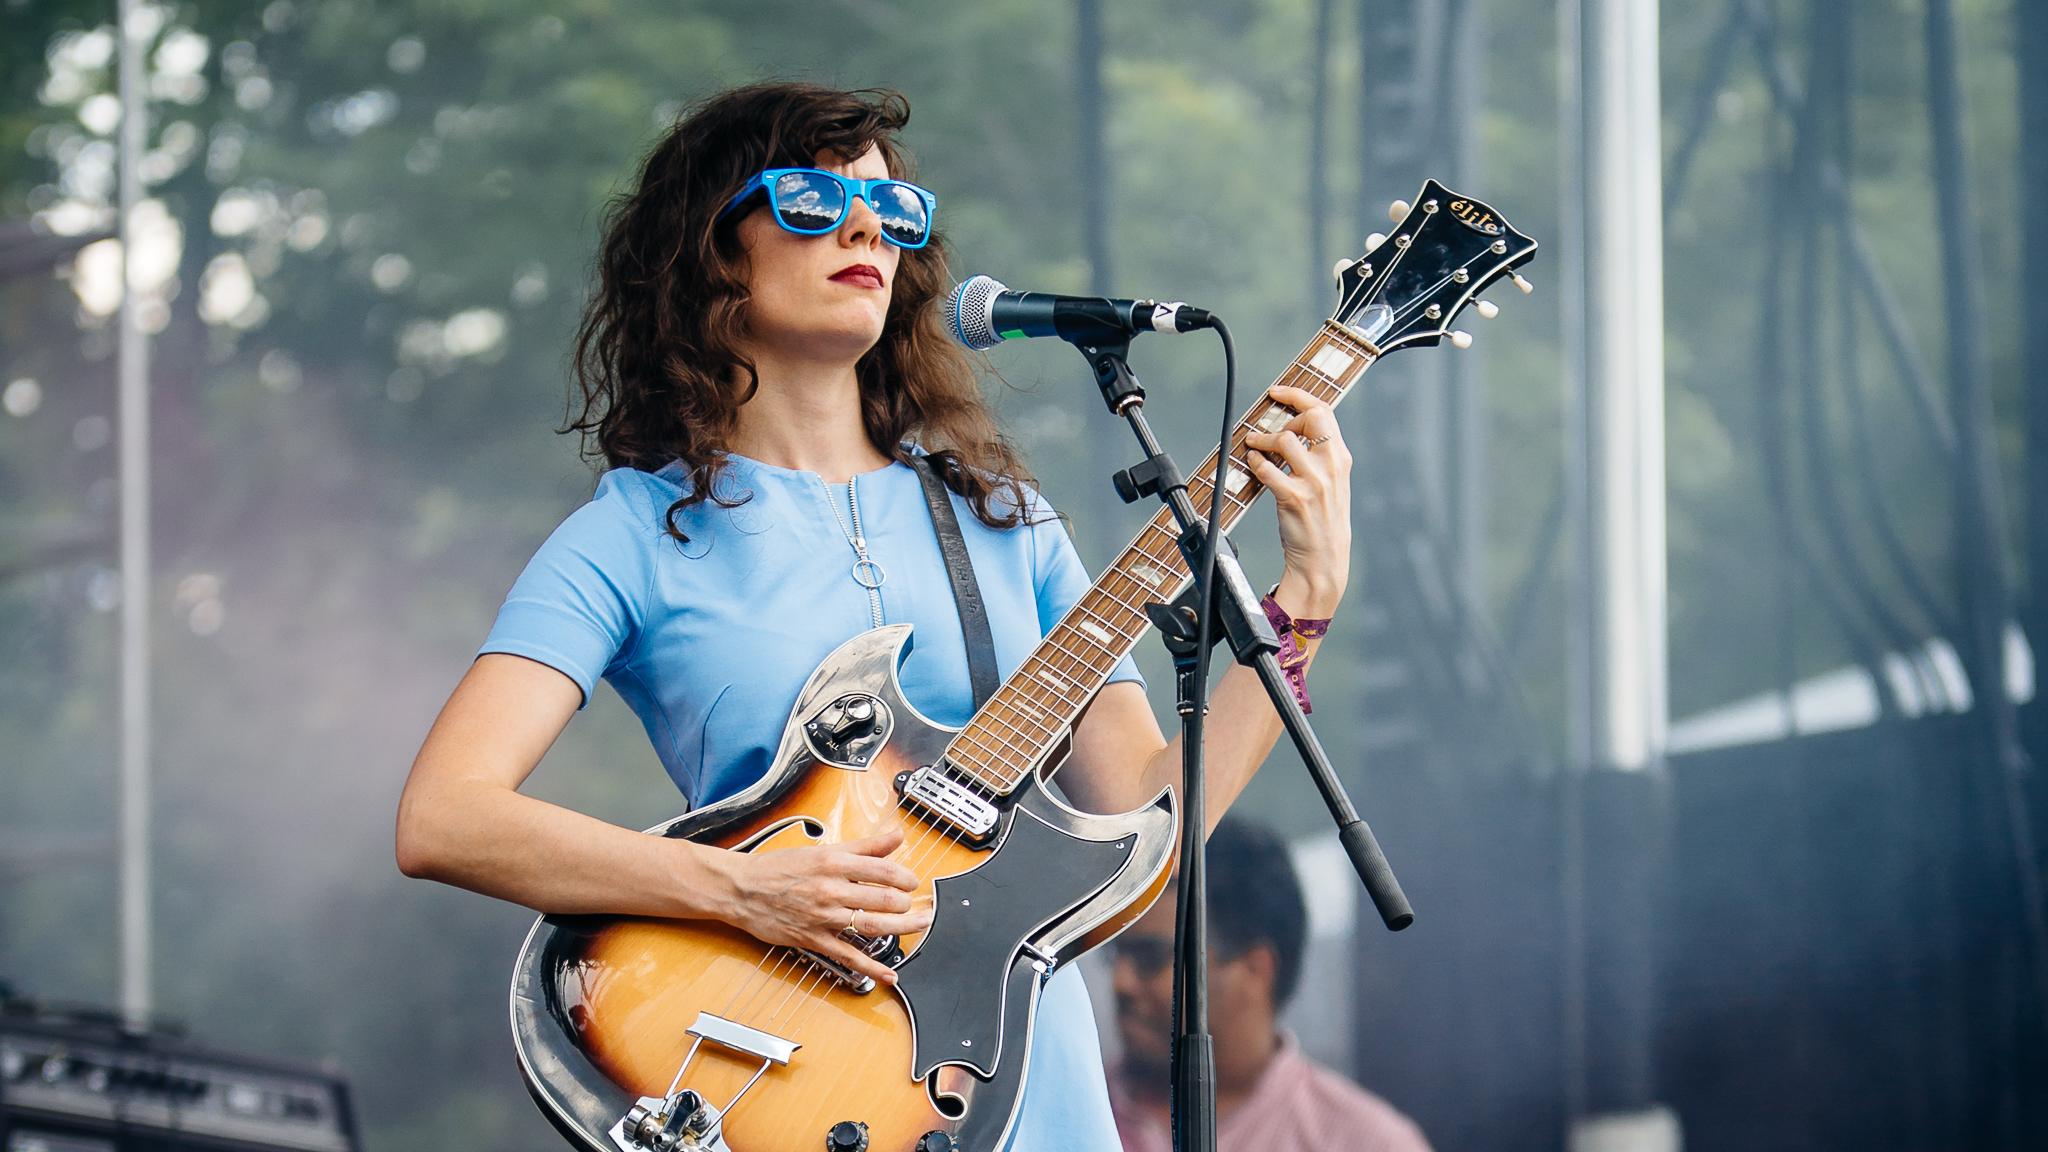 Natalie Prass took the stage at Union Park on the first day of Pitchfork Music Festival, July 17, 2015.